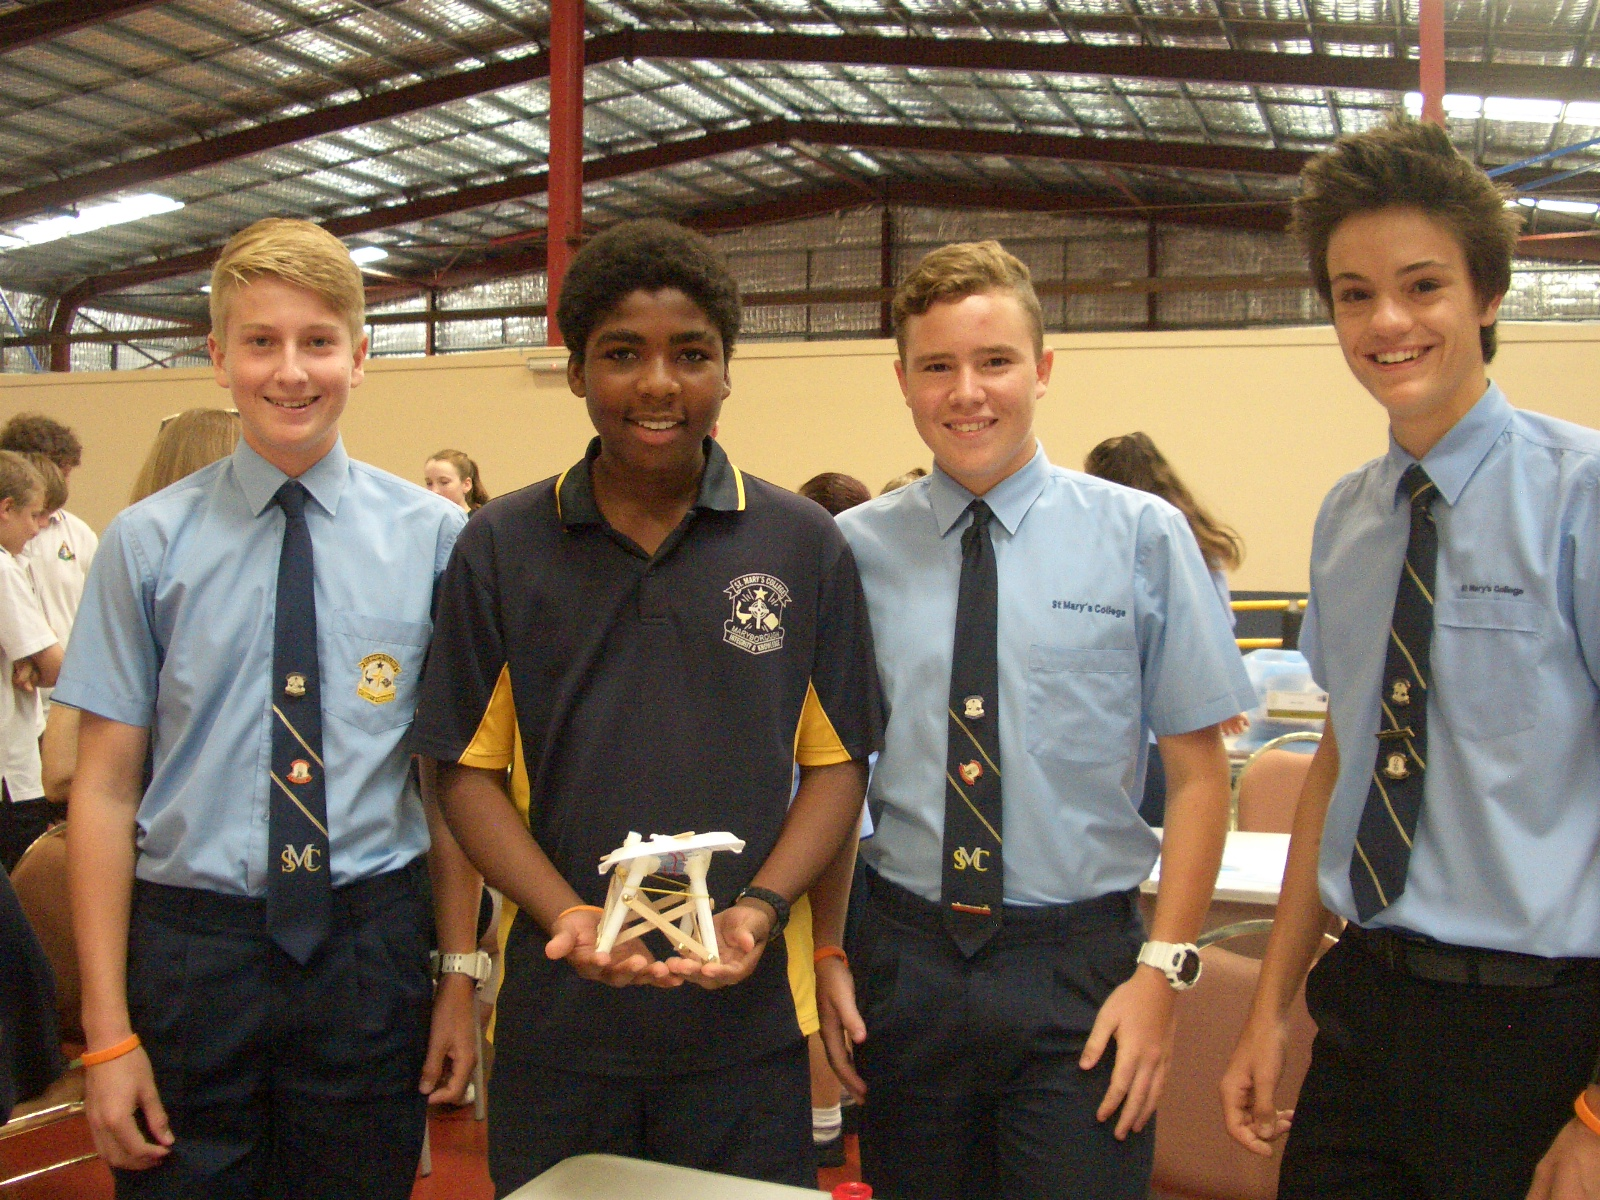 Laird McKay, Somtochukwu Ibe, Connor Rankin and Patrick Mushan with their design at the challenge.